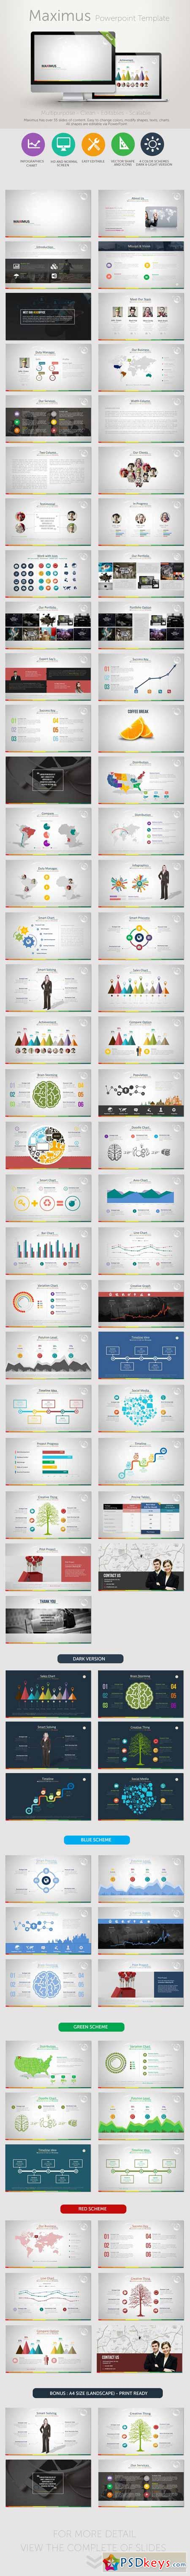 Maximus PowerPoint Presentation Template 8753194